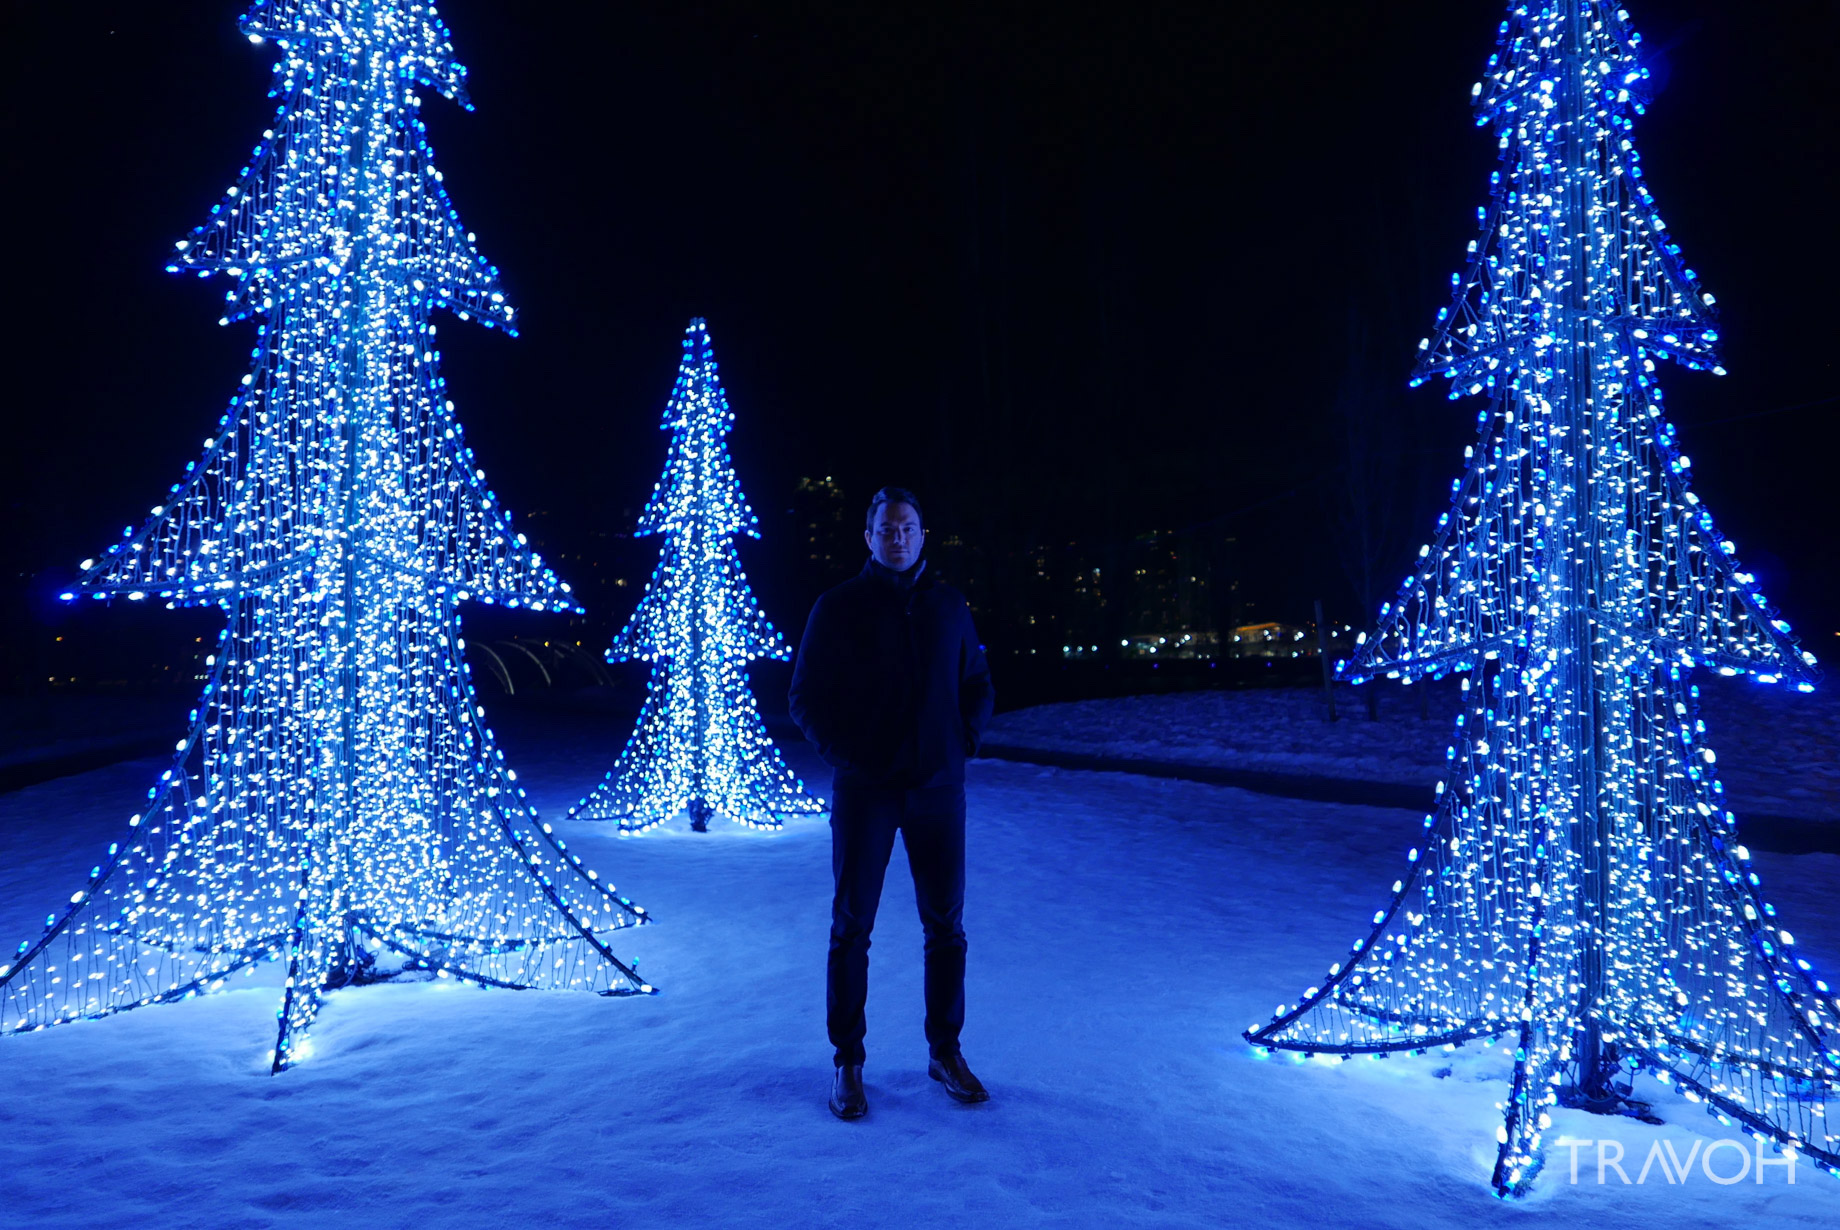 Marcus Anthony - Lafarge Winter Lights Display - Winter Christmas Trees - Coquitlam, BC, Canada